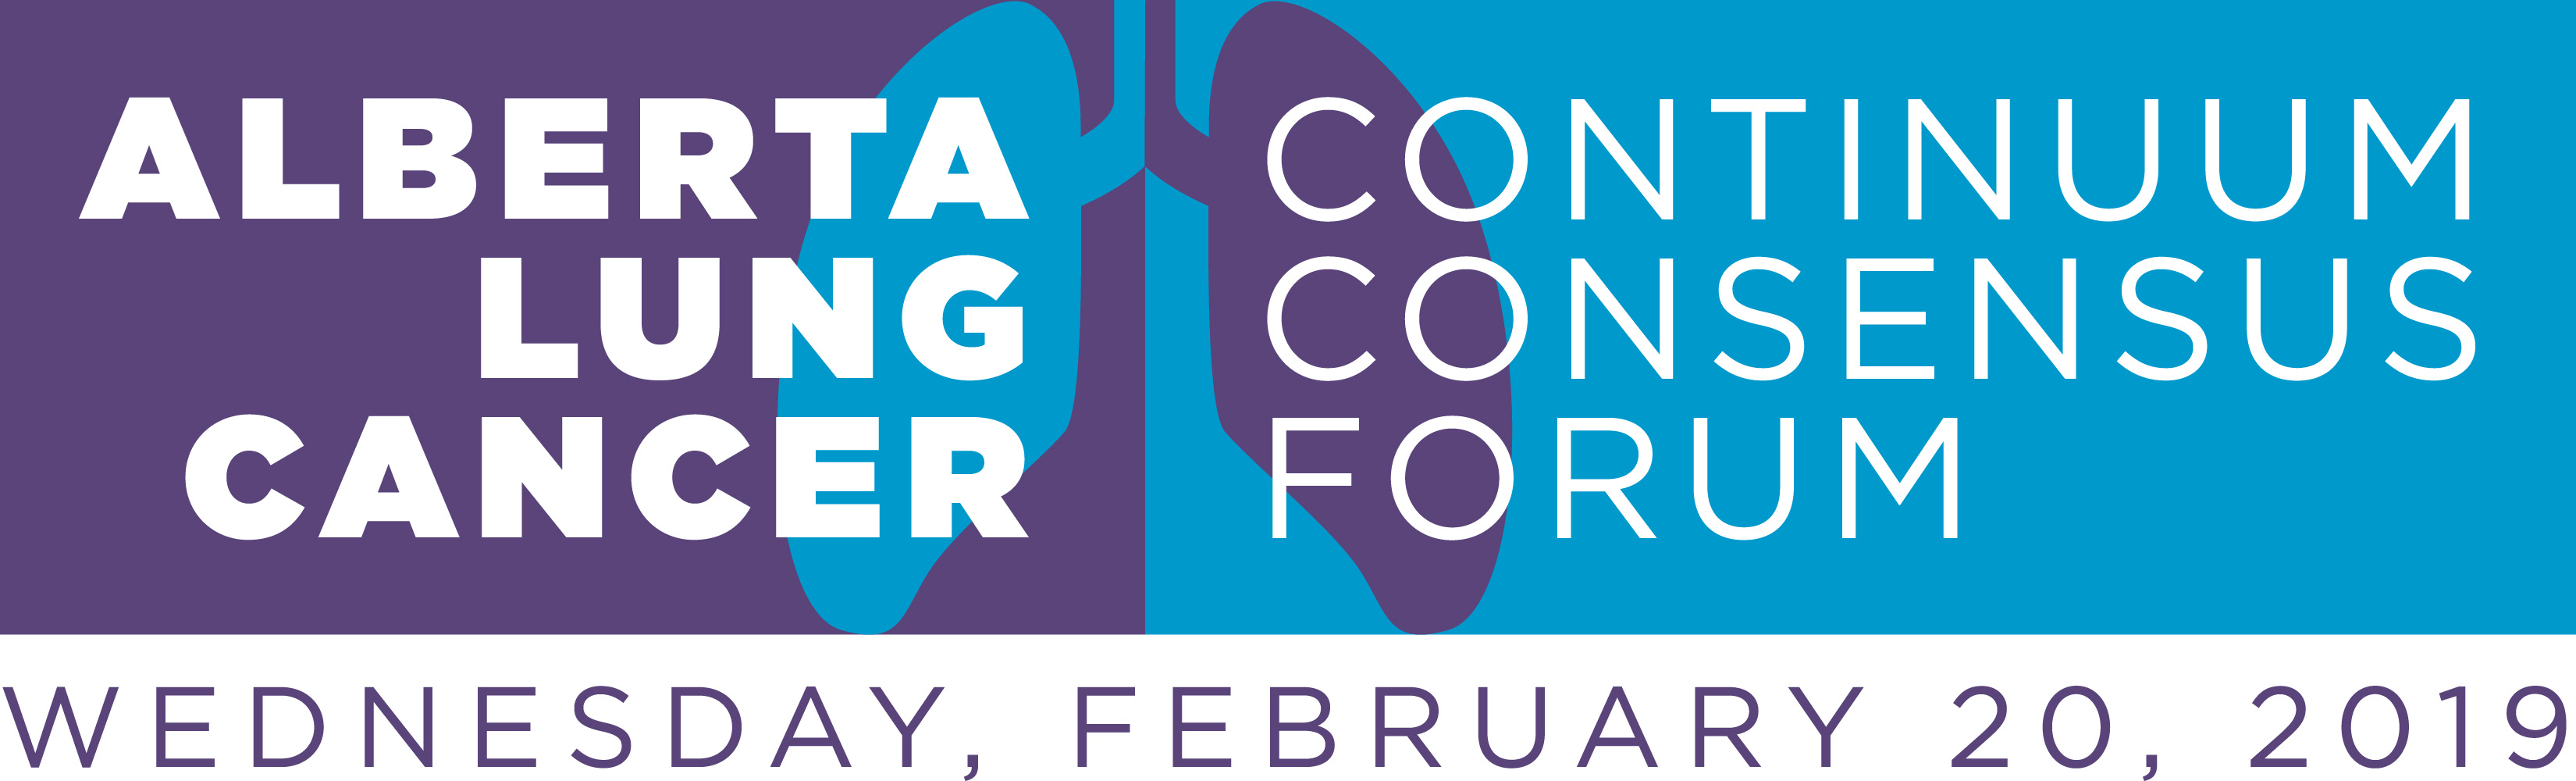 Alberta Lung Cancer Continuum Consensus Forum